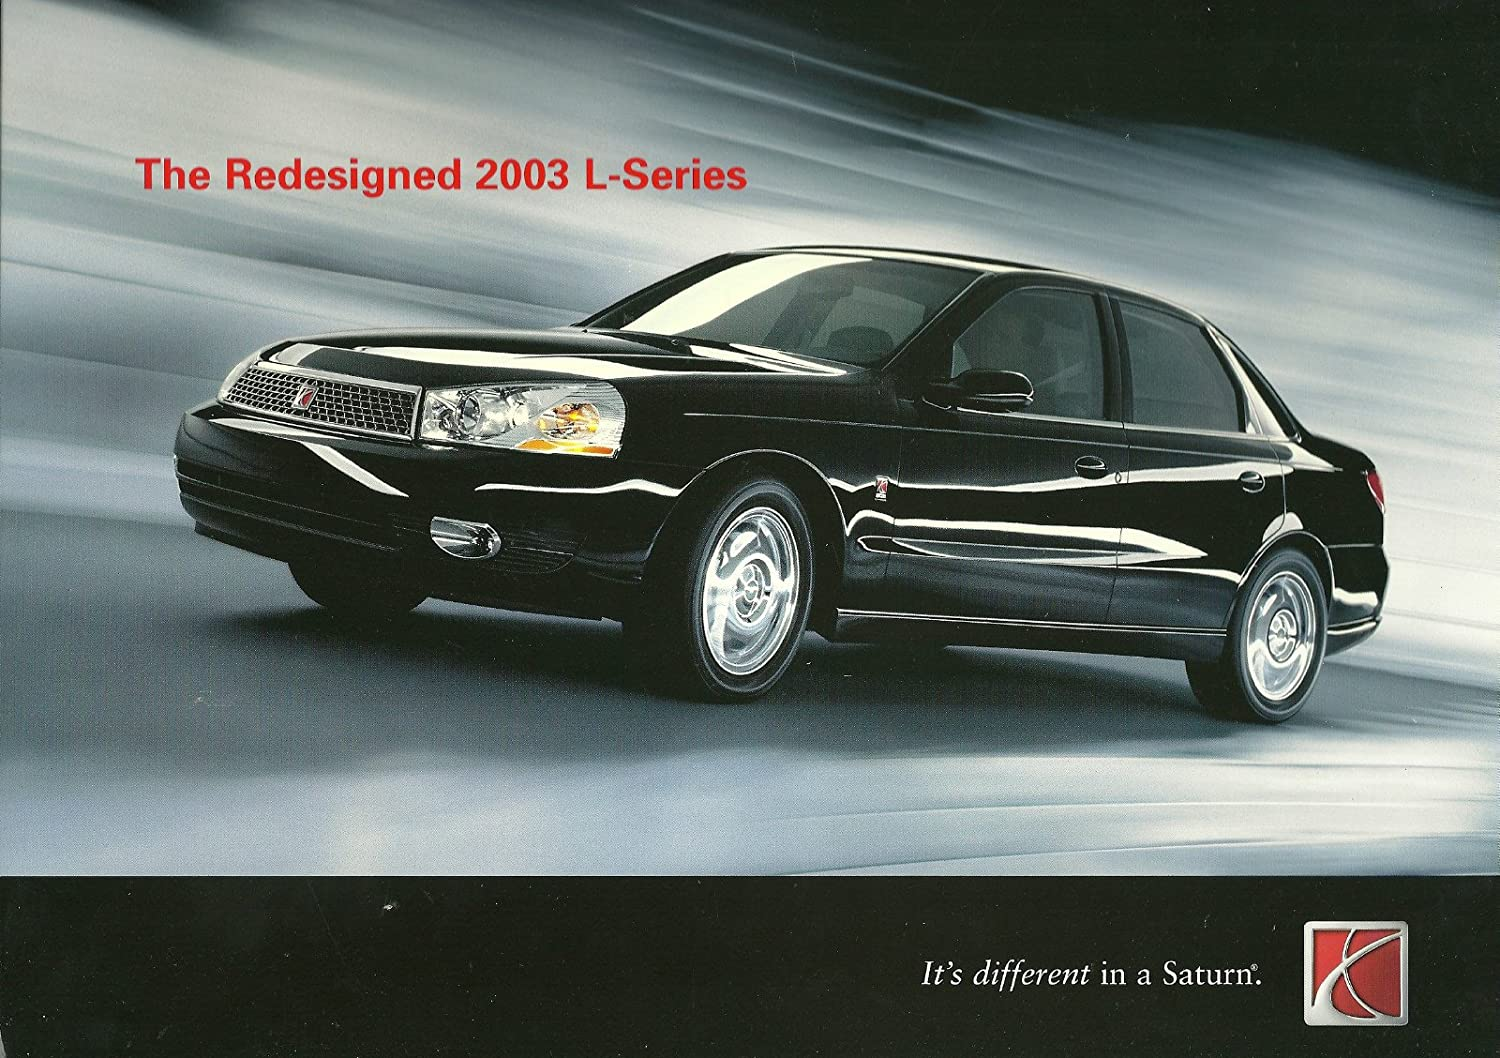 2003 Saturn L Series Prestige Color Sales Brochure In Portfolio Usa Excellent Other Products Everything Else